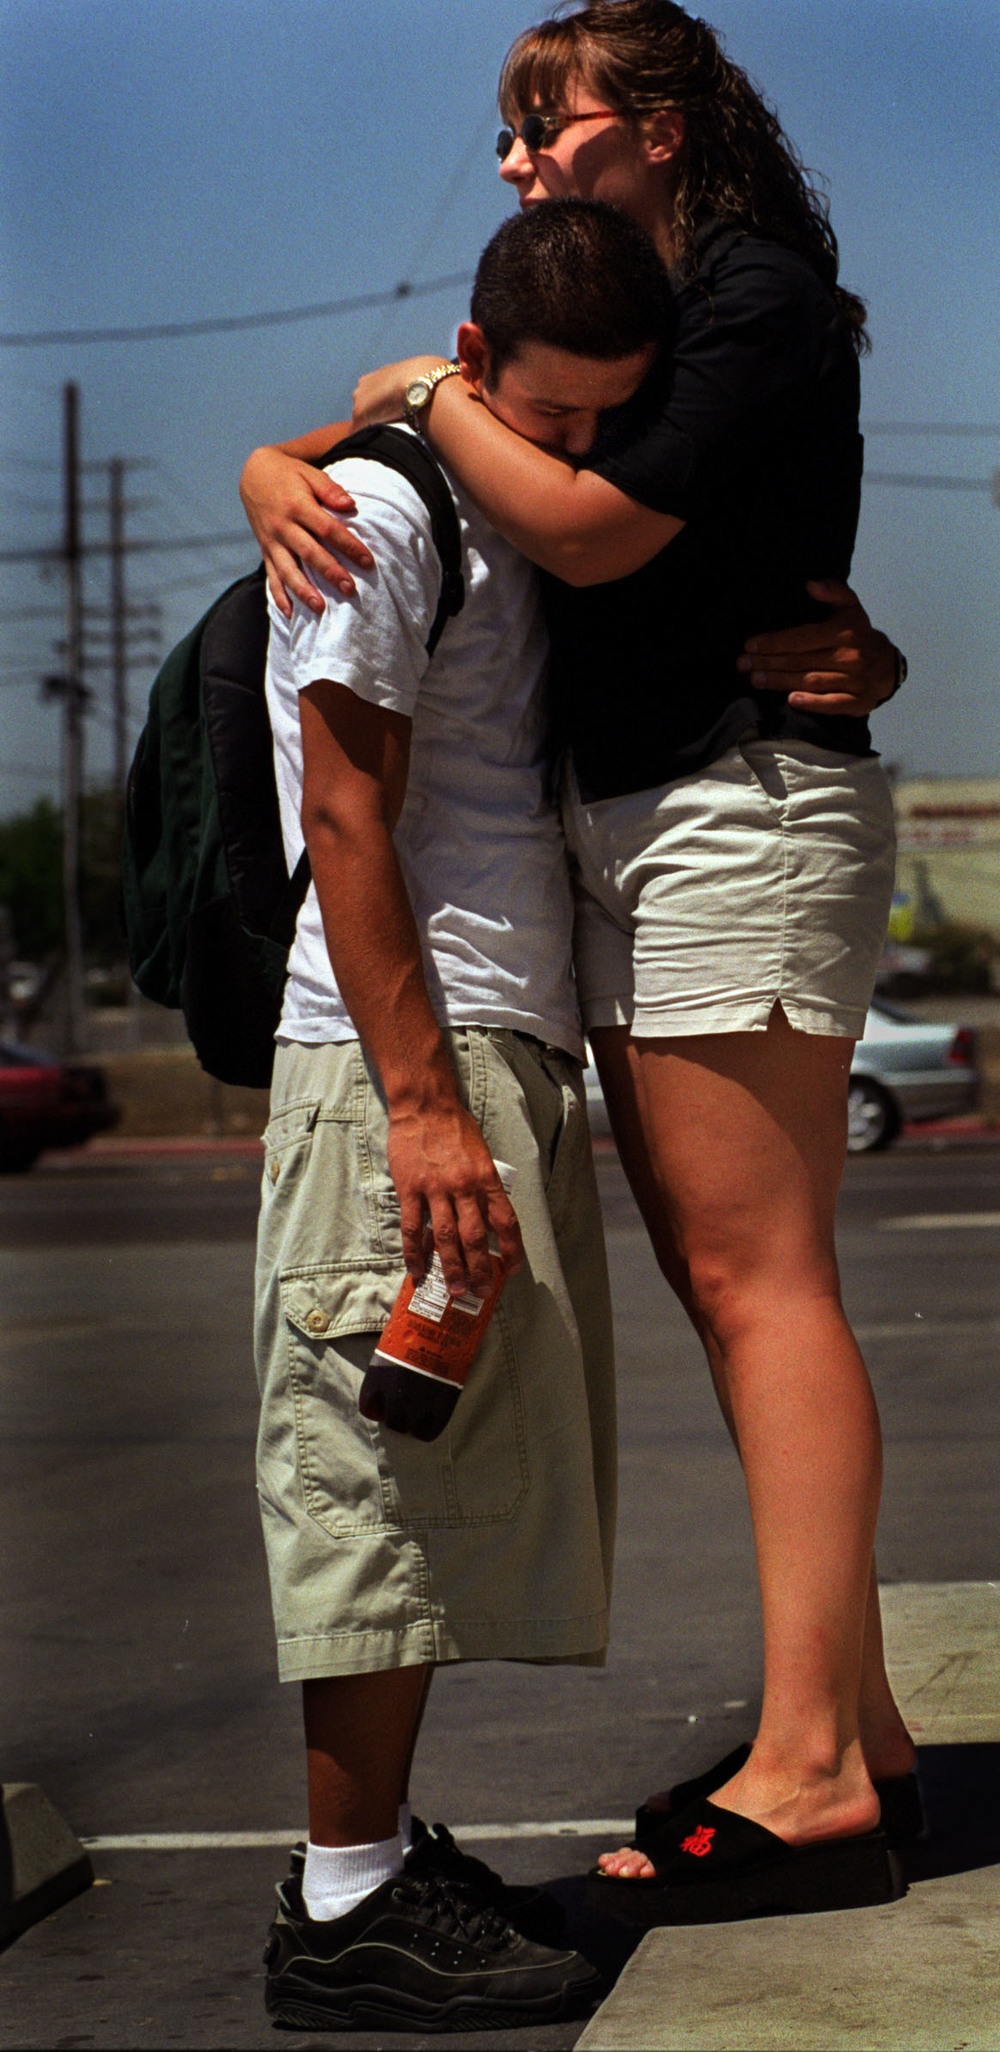 After being kicked out of his apartment during day time hours to look for a job, Jesse hangs out with girlfriend, Rebecca, at the end of his street. He was given a two week warning to find a job or lose his transitional housing. ©Gail Fisher Los Angeles Times